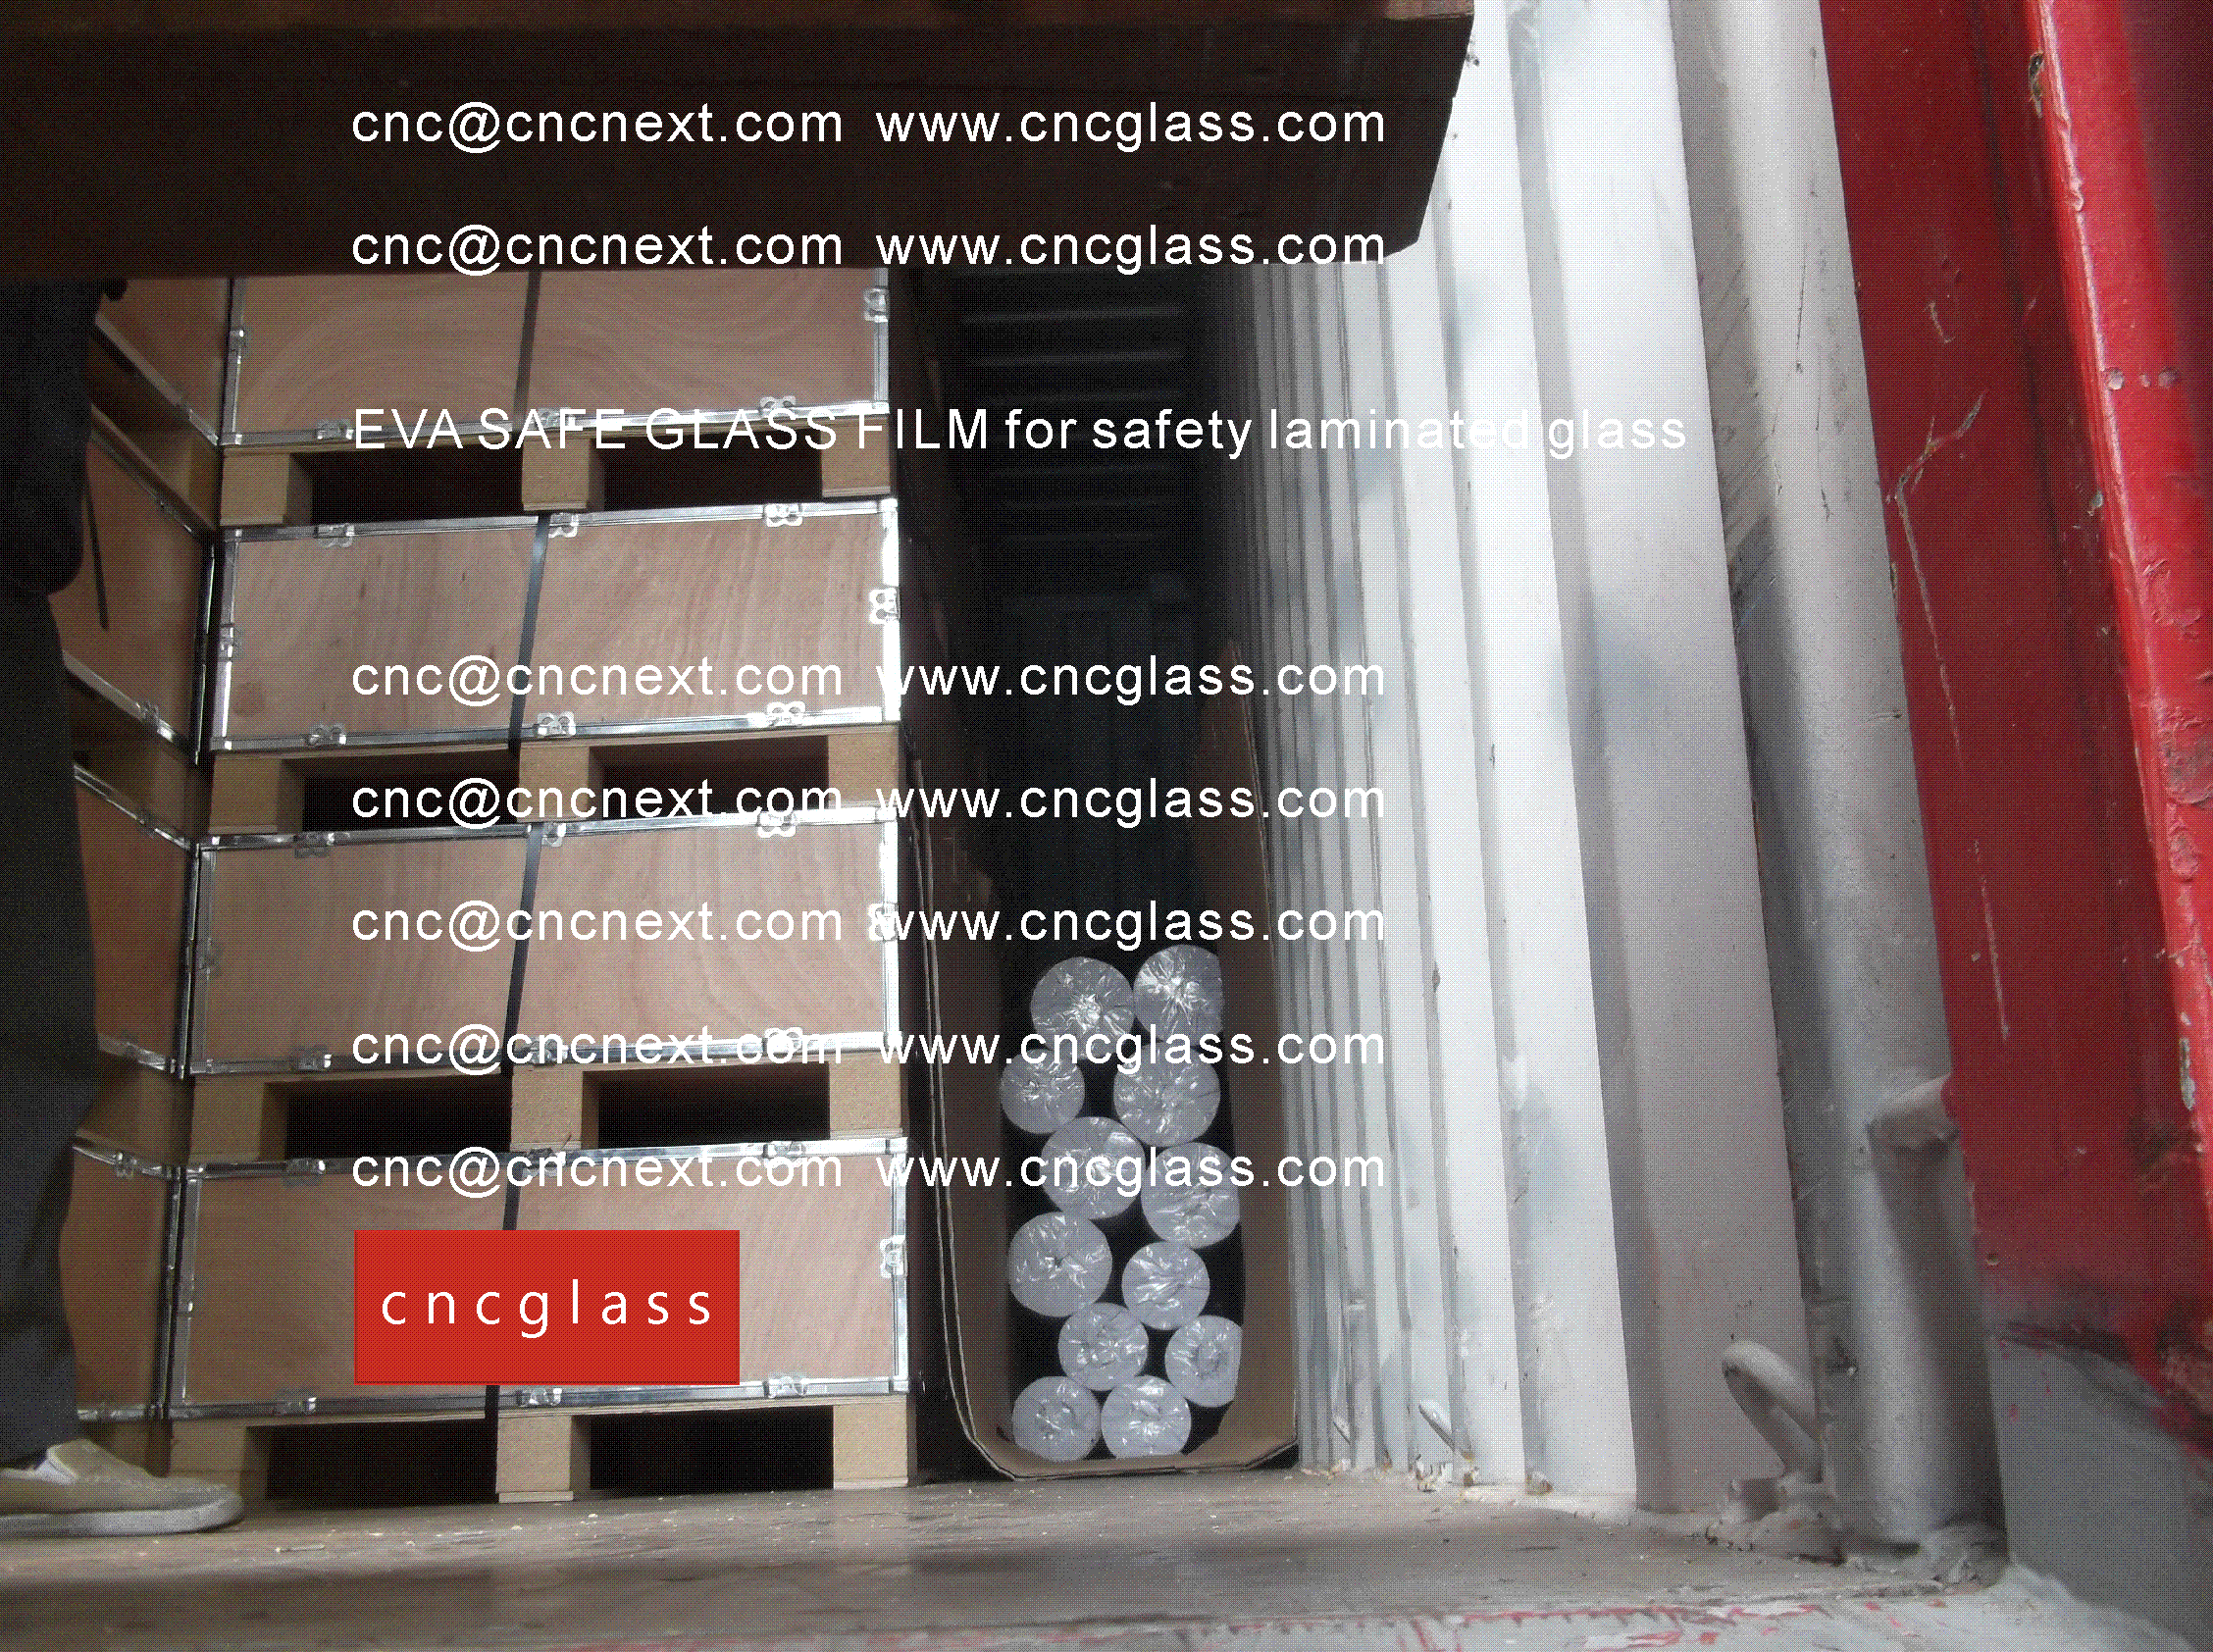 005 EVA SAFE GLASS FILM LOADING CONTAINER (SAFETY LAMINATED GLASS)